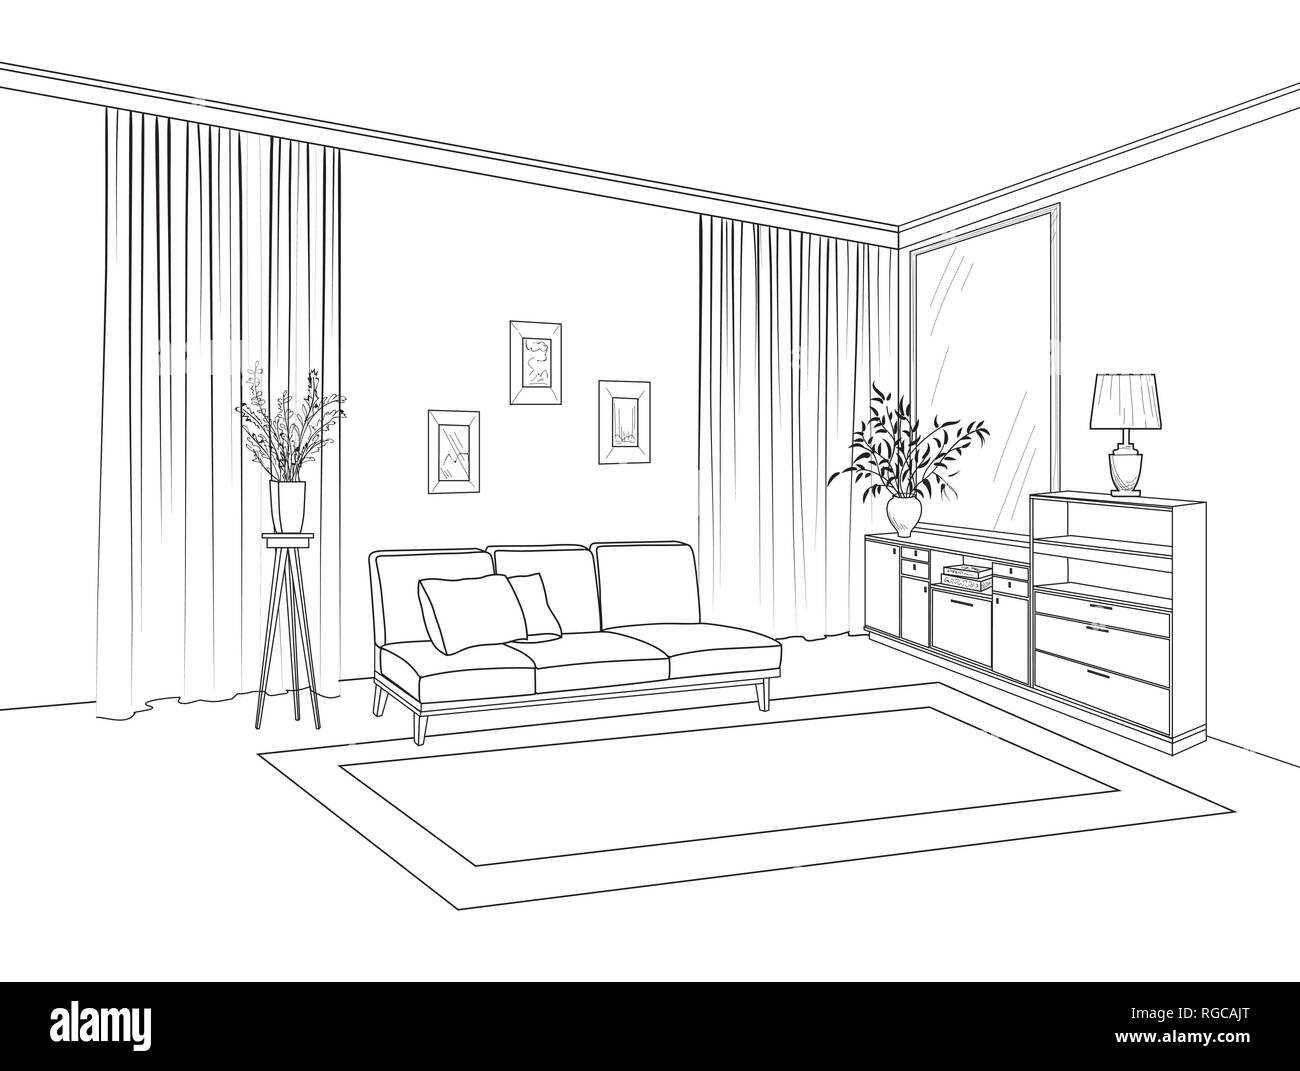 Home living room interior. Outline sketch of furniture with sofa